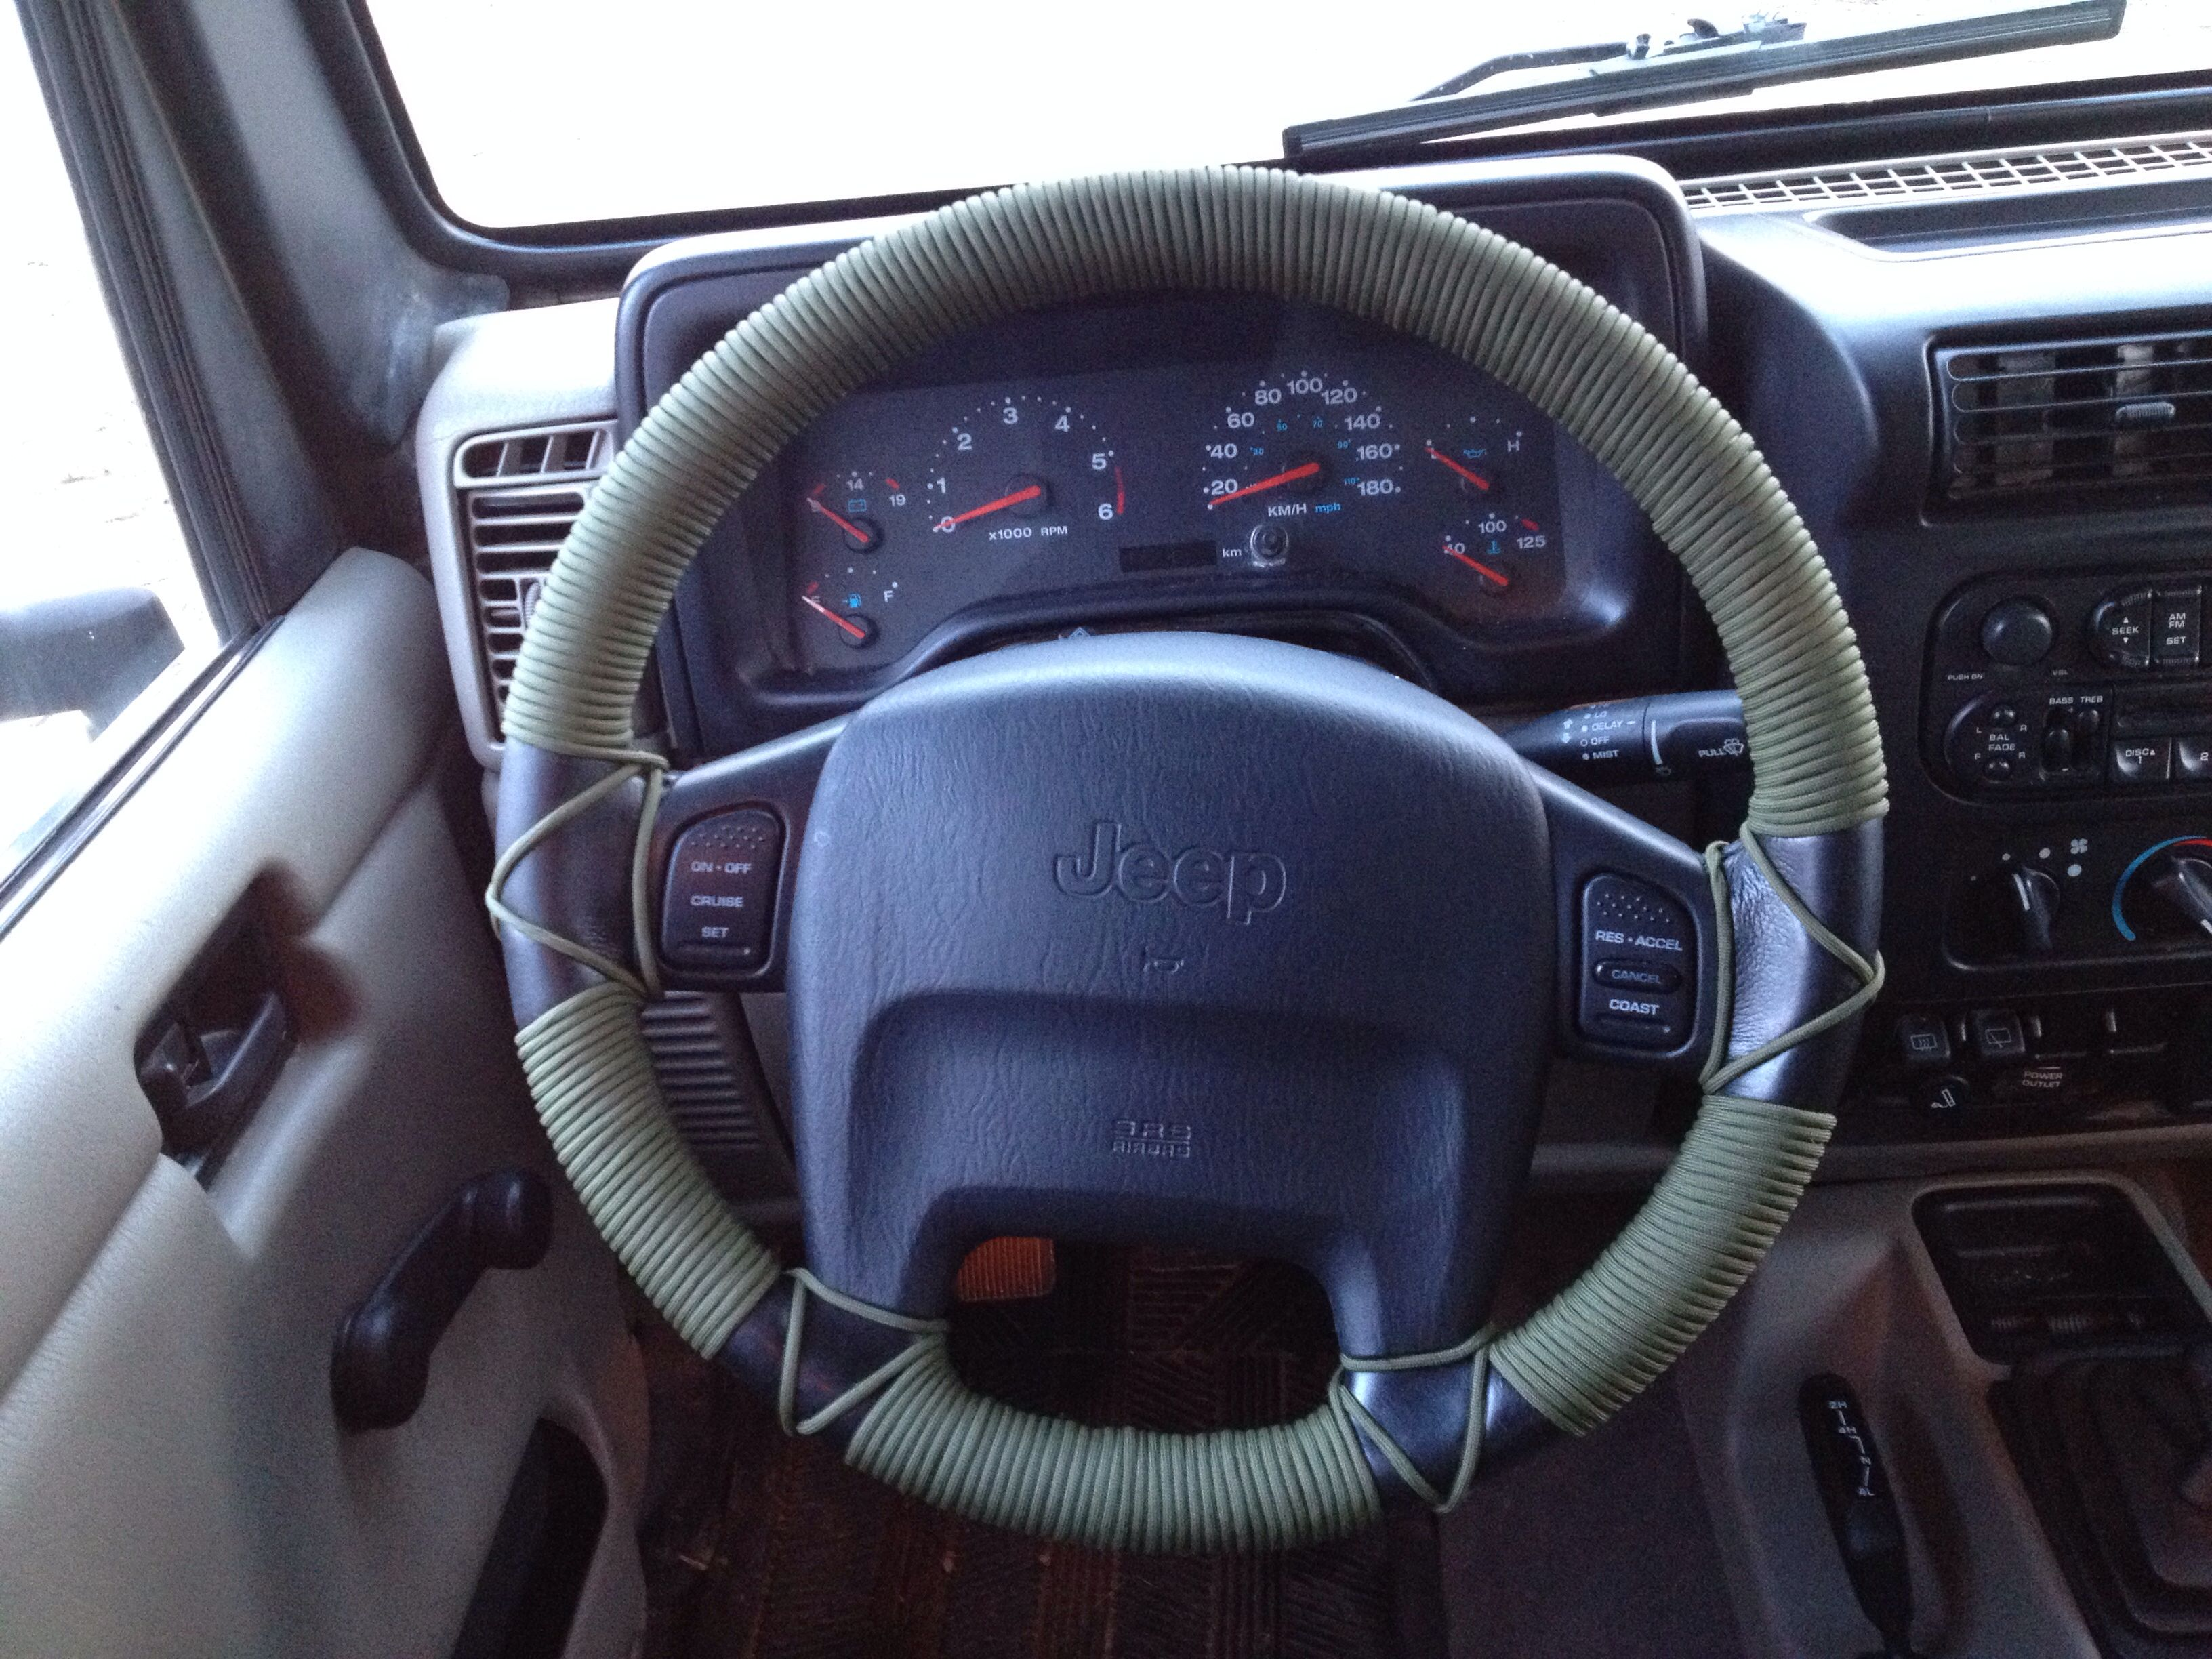 24m Of Paracord As A Steering Wheel Cover Jeep Jeep Wj Jeep Xj Jeep Tj